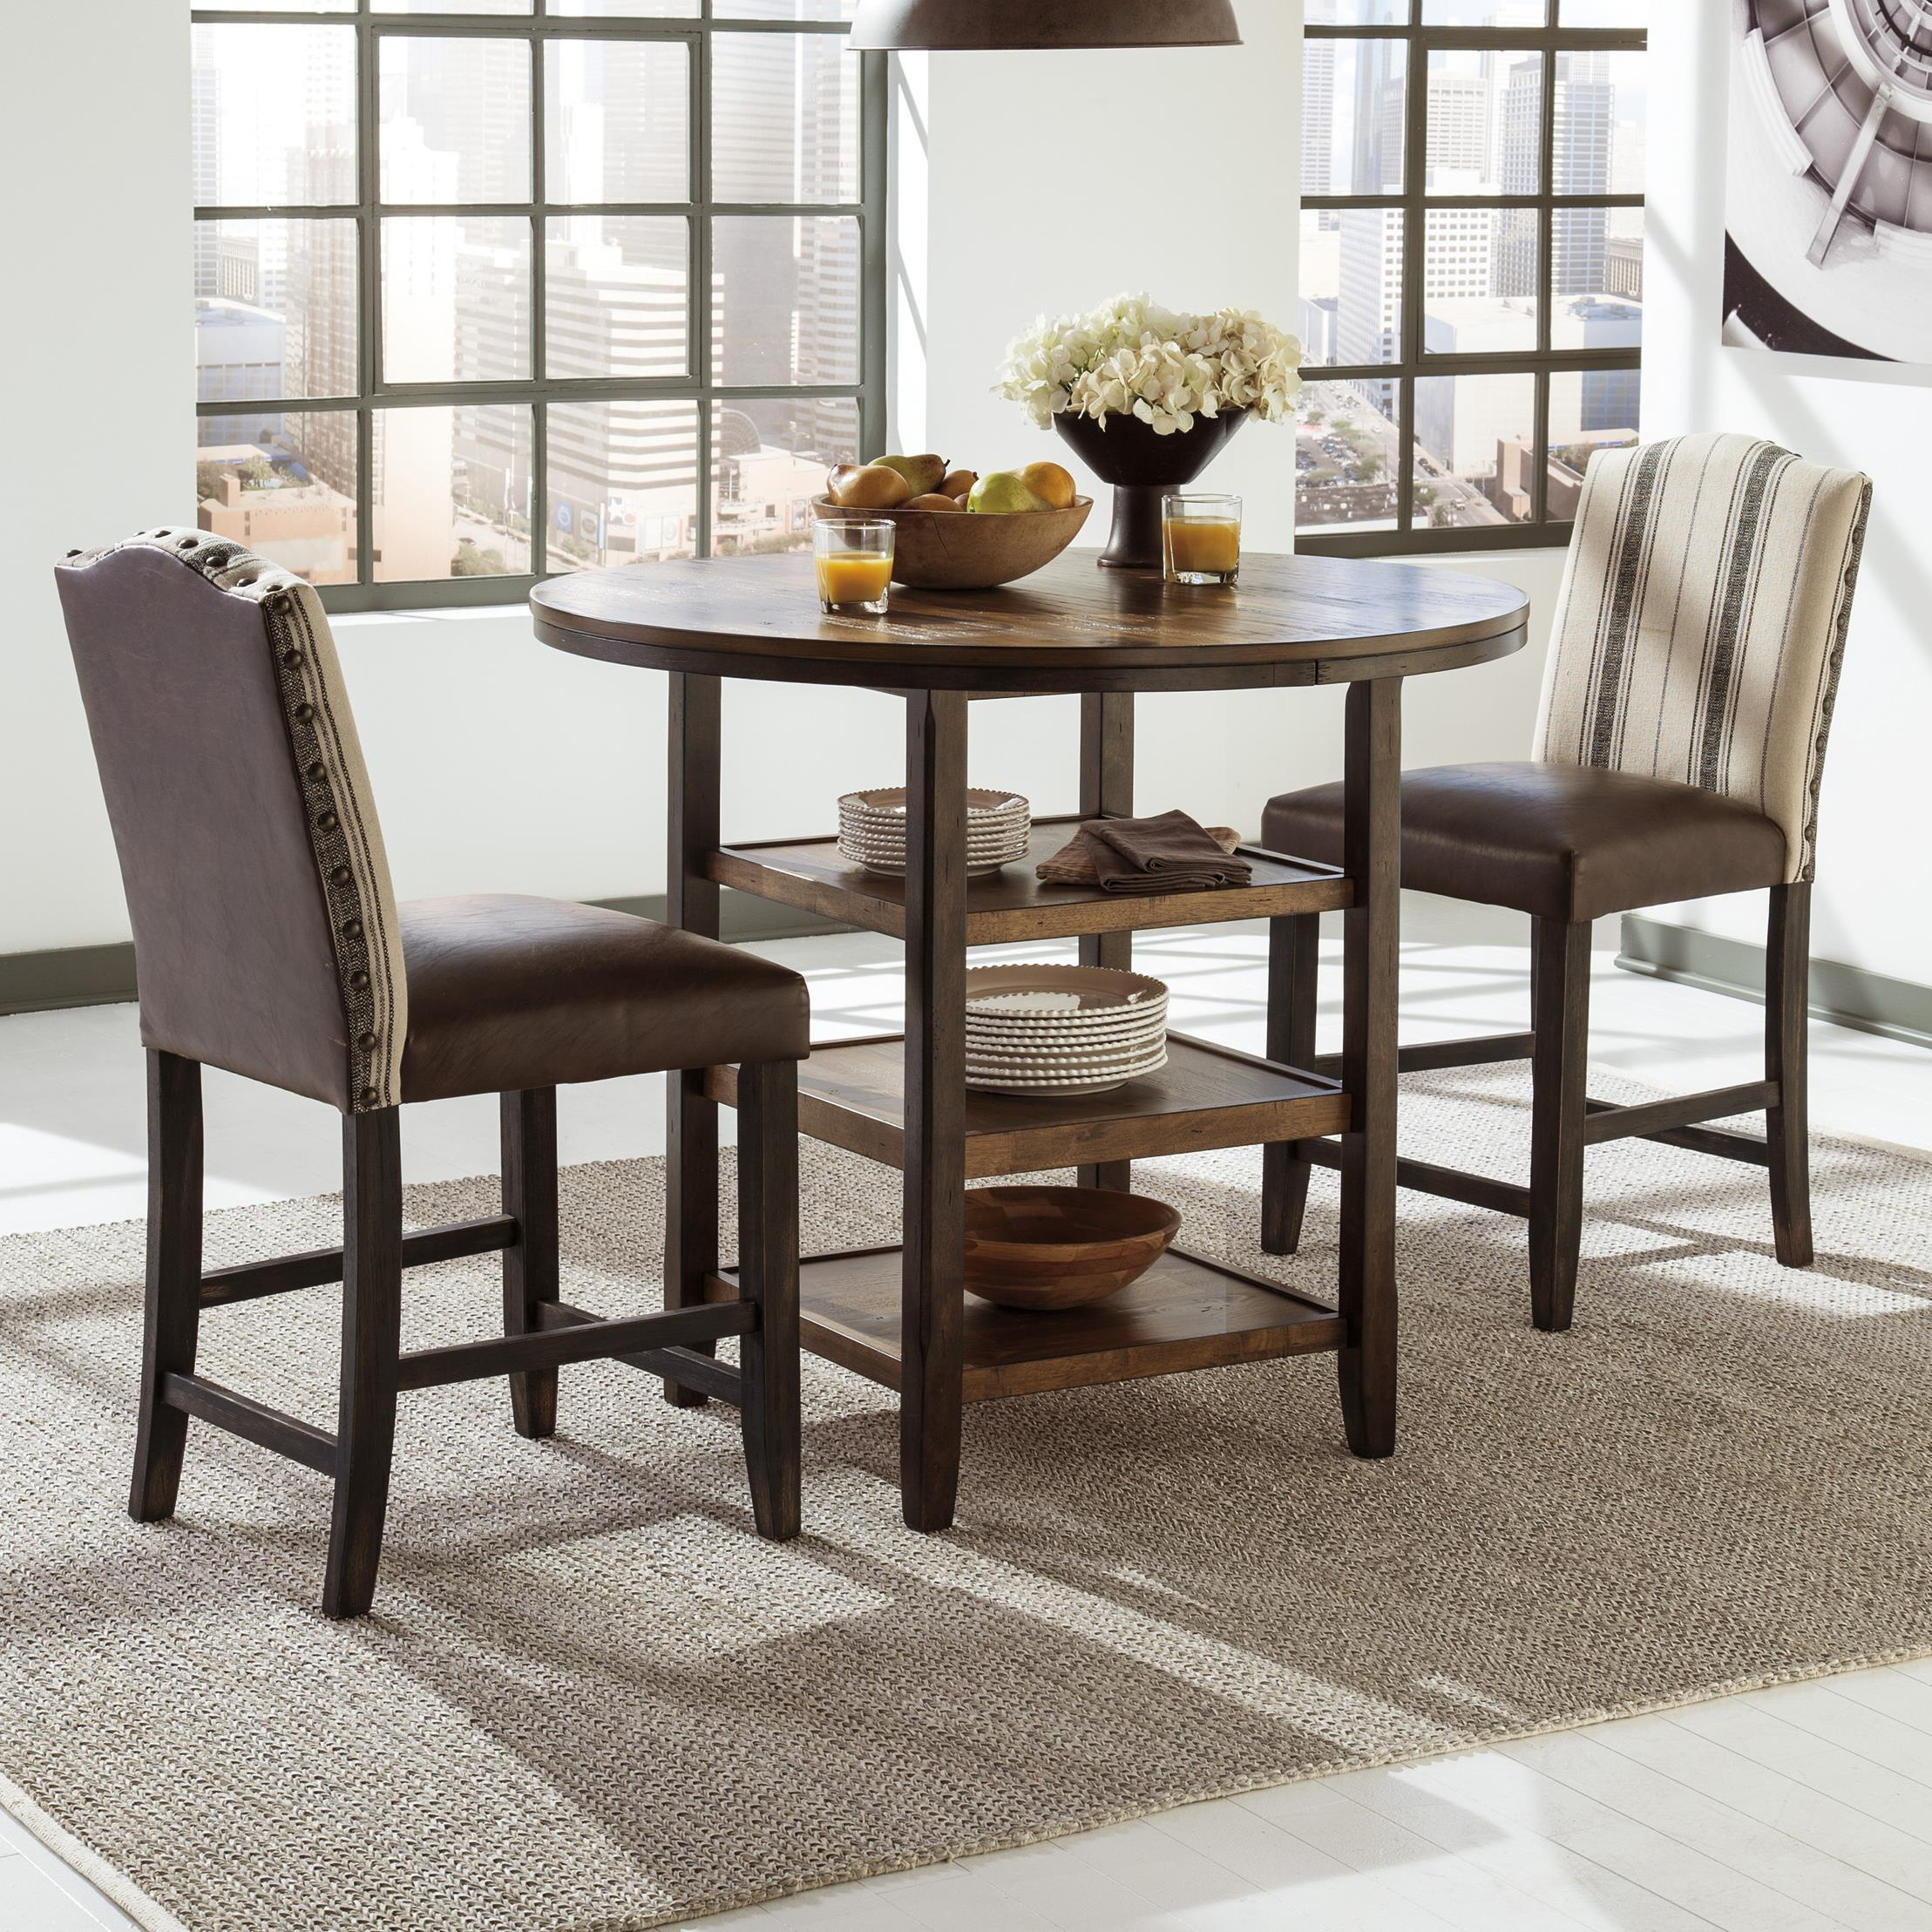 Signature Design by Ashley Moriann 3-Piece Counter Table Set - Item Number: D608-13+2x324